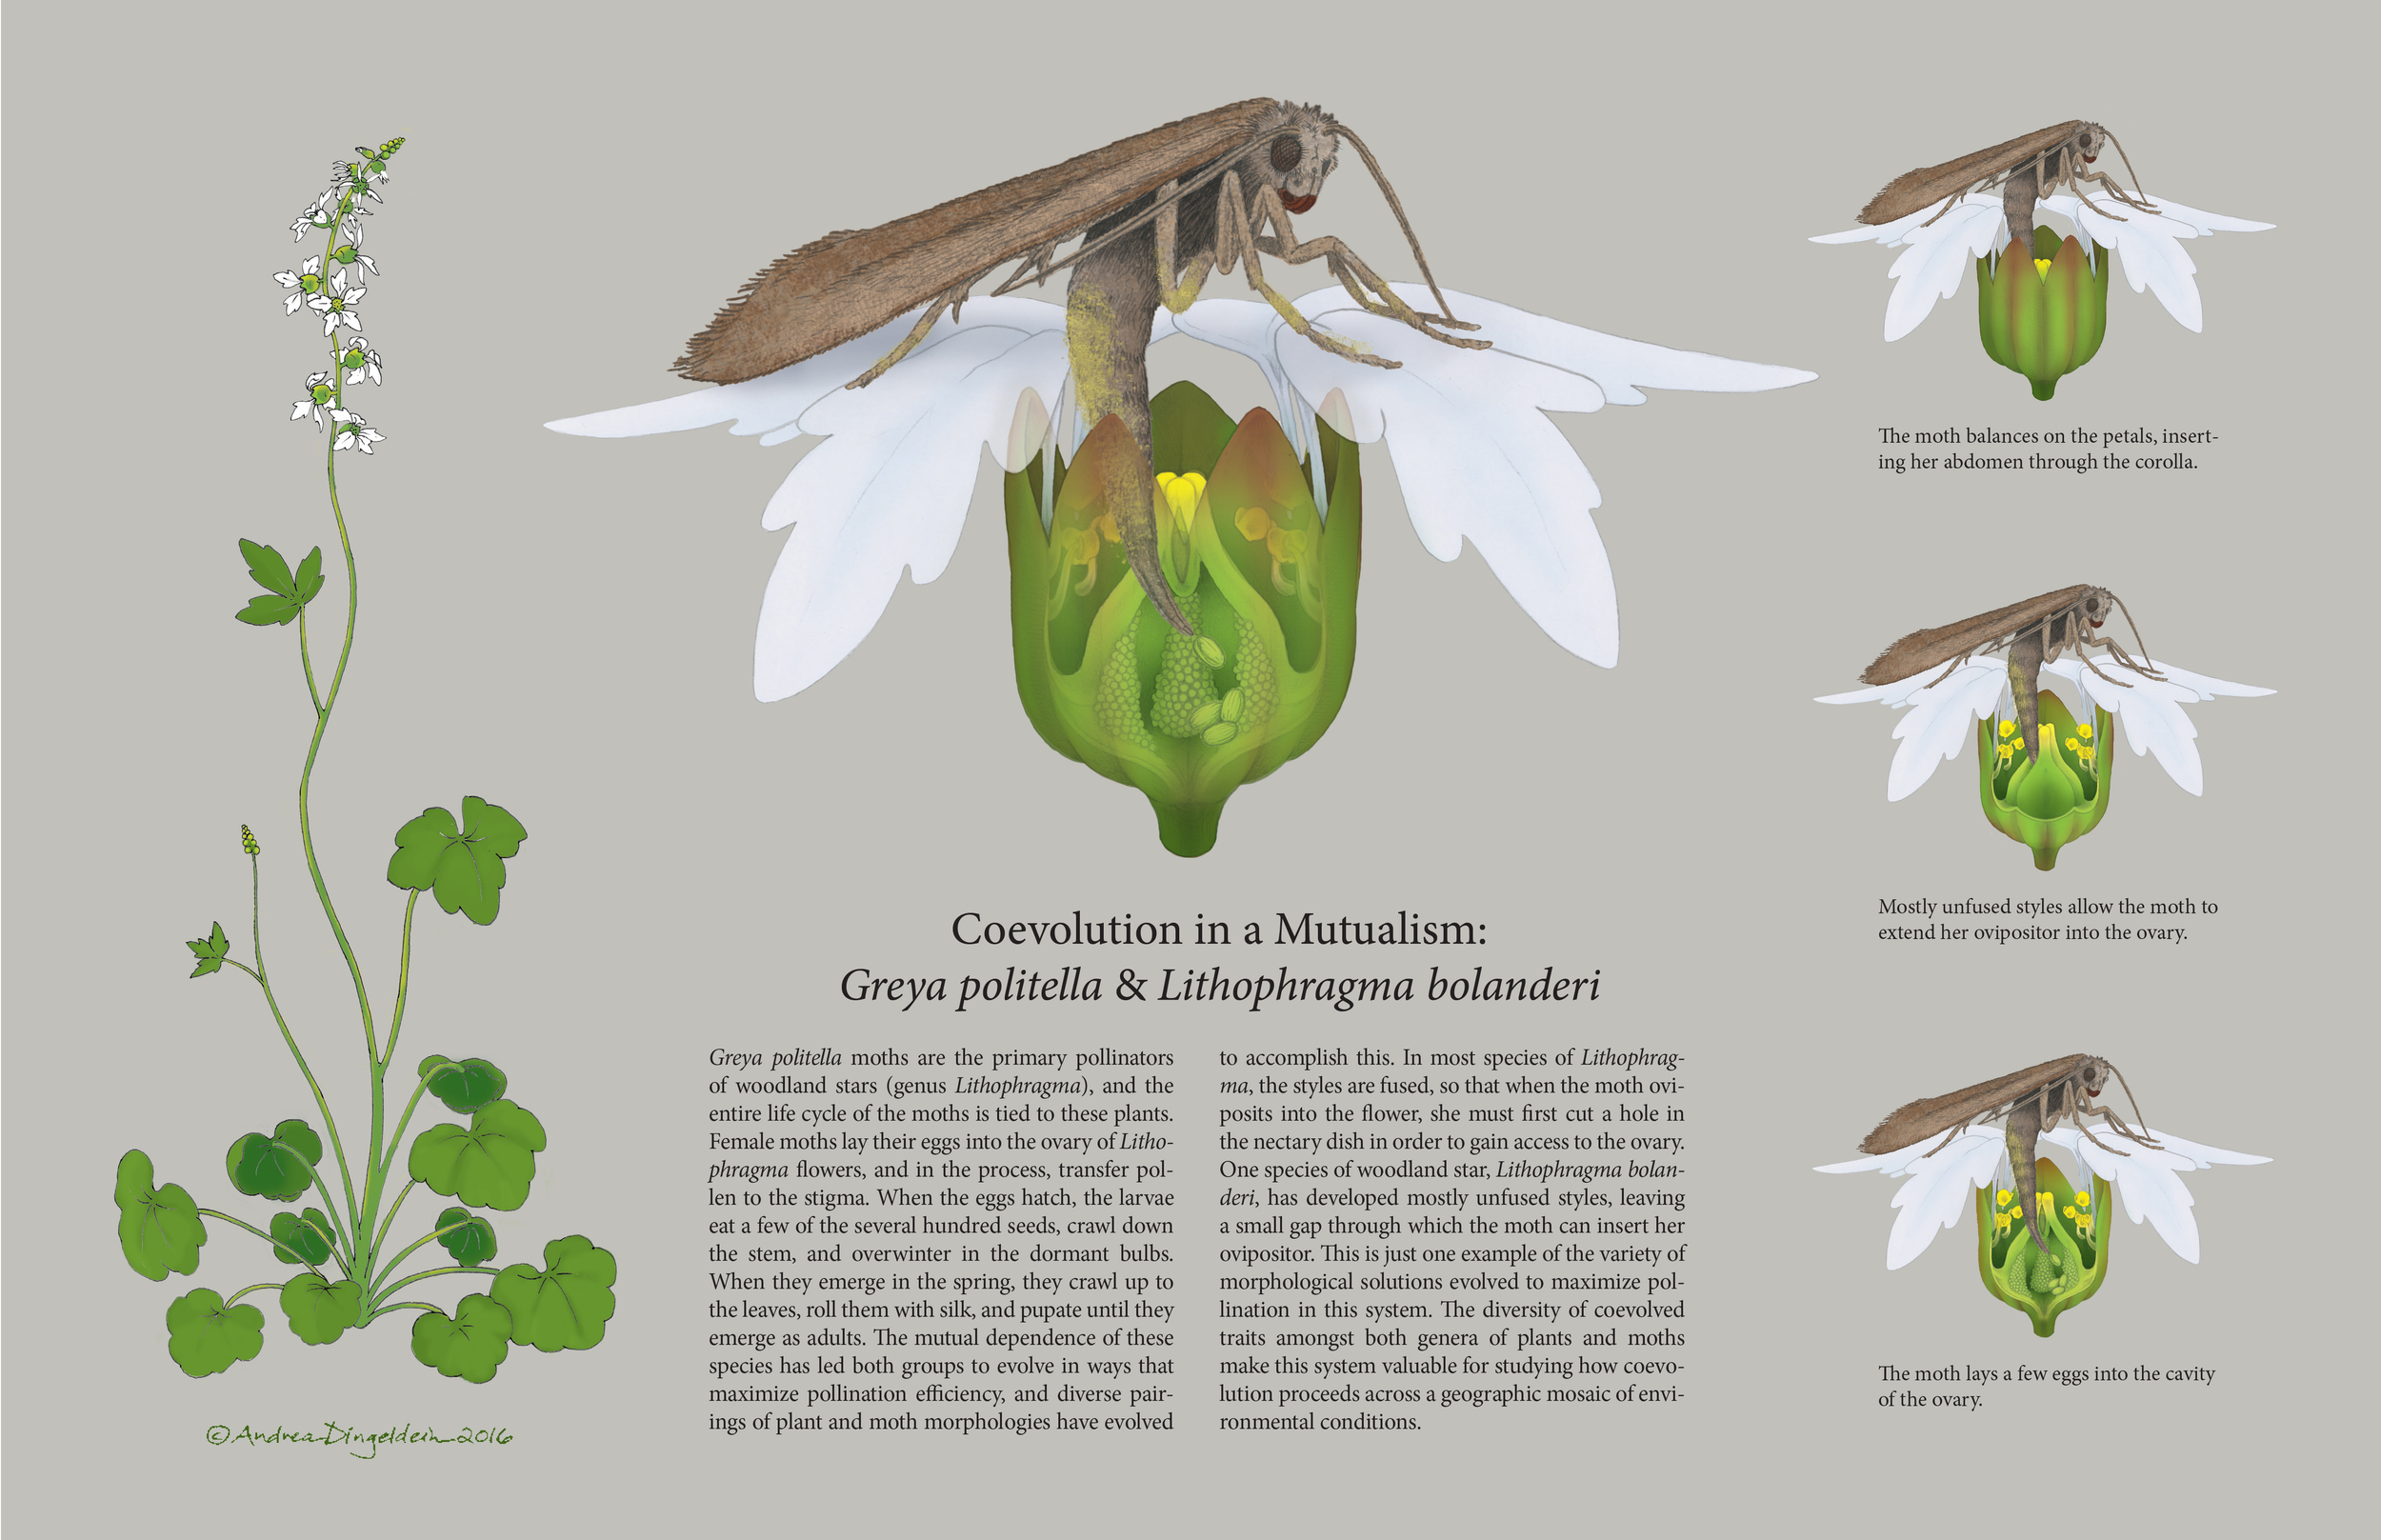 Coevolution in a Mutualism